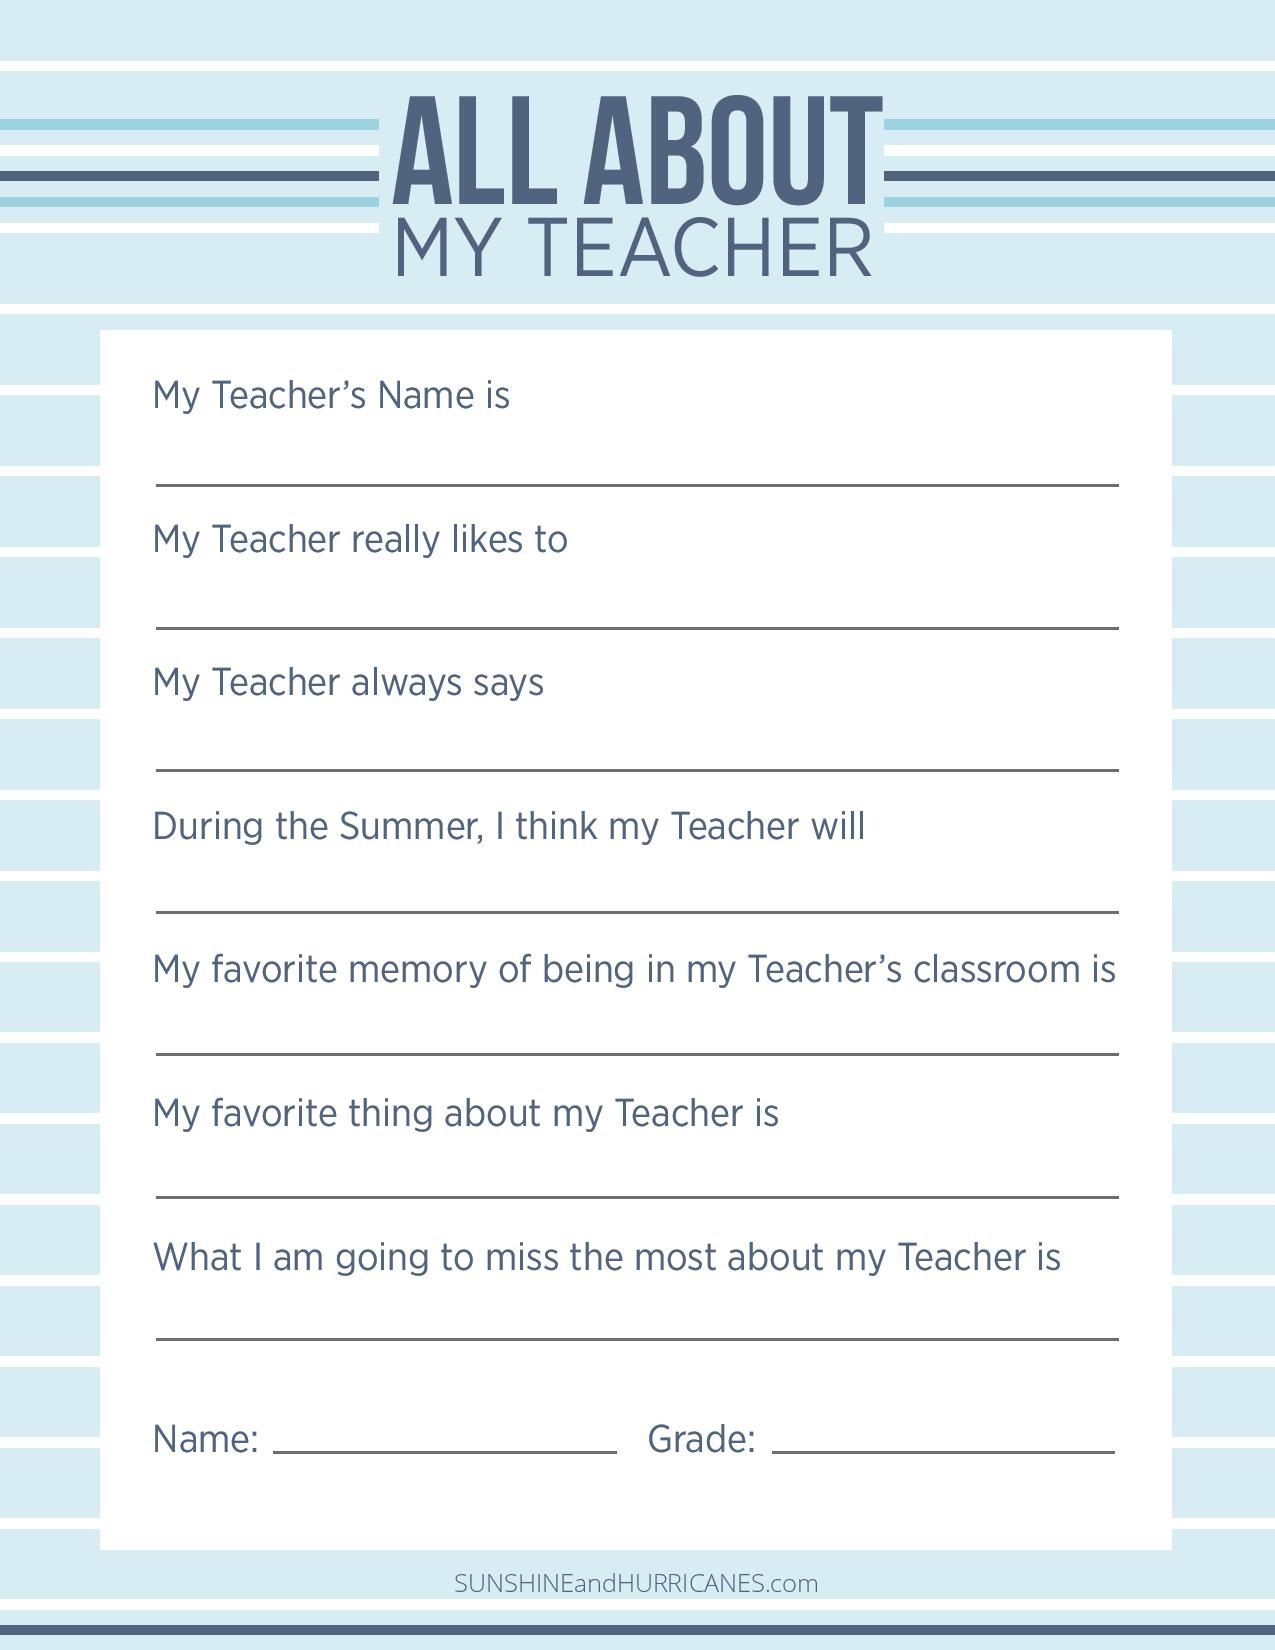 Teacher Appreciation Week Questionnaire